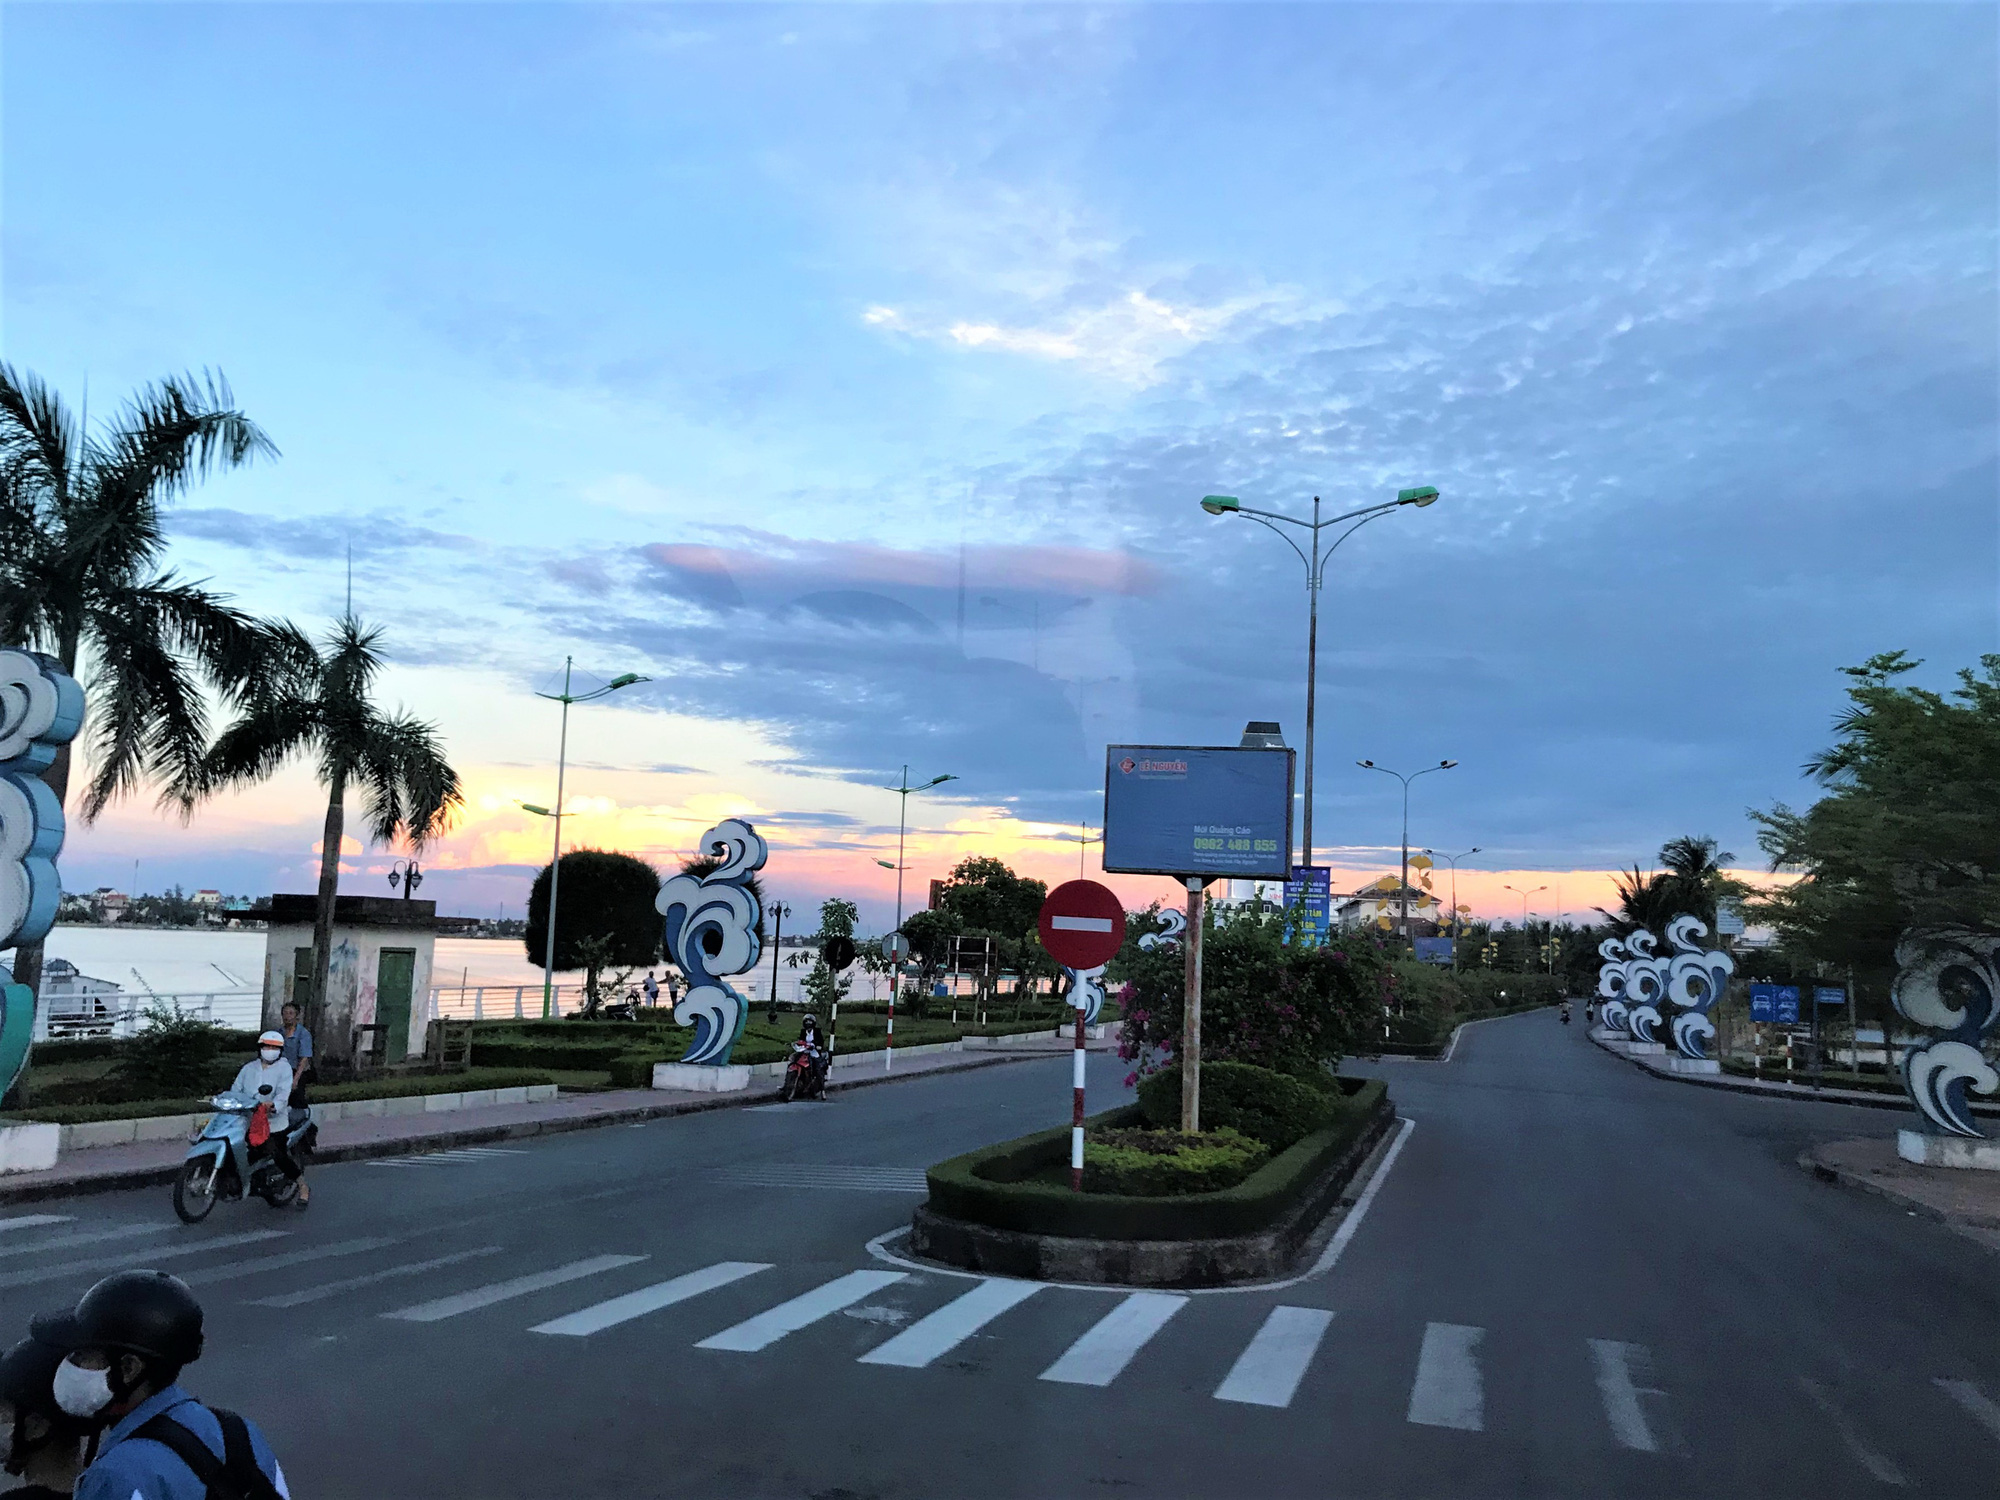 A road of Dong Hoi City in Quang Binh Provincr, Vietnam is almost empty at dusk.